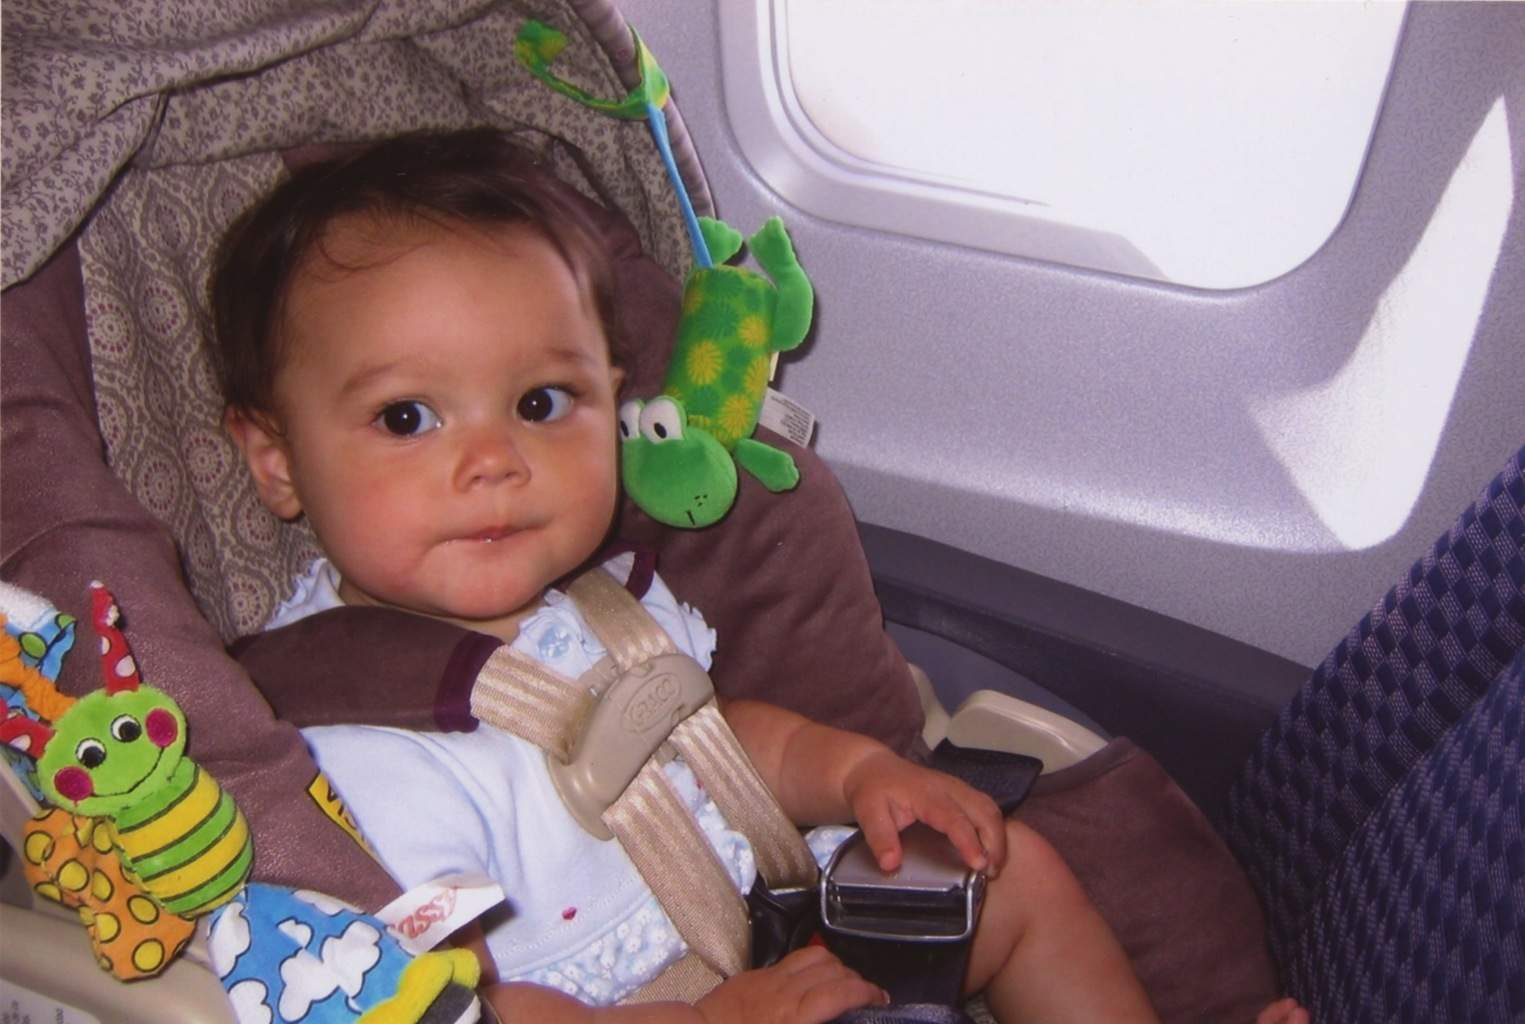 Travel expert Debra Schroeder shares tips on flying with a baby or toddler to keep your sanity and avoid irritating other passengers. https://www.travelingwellforless.com